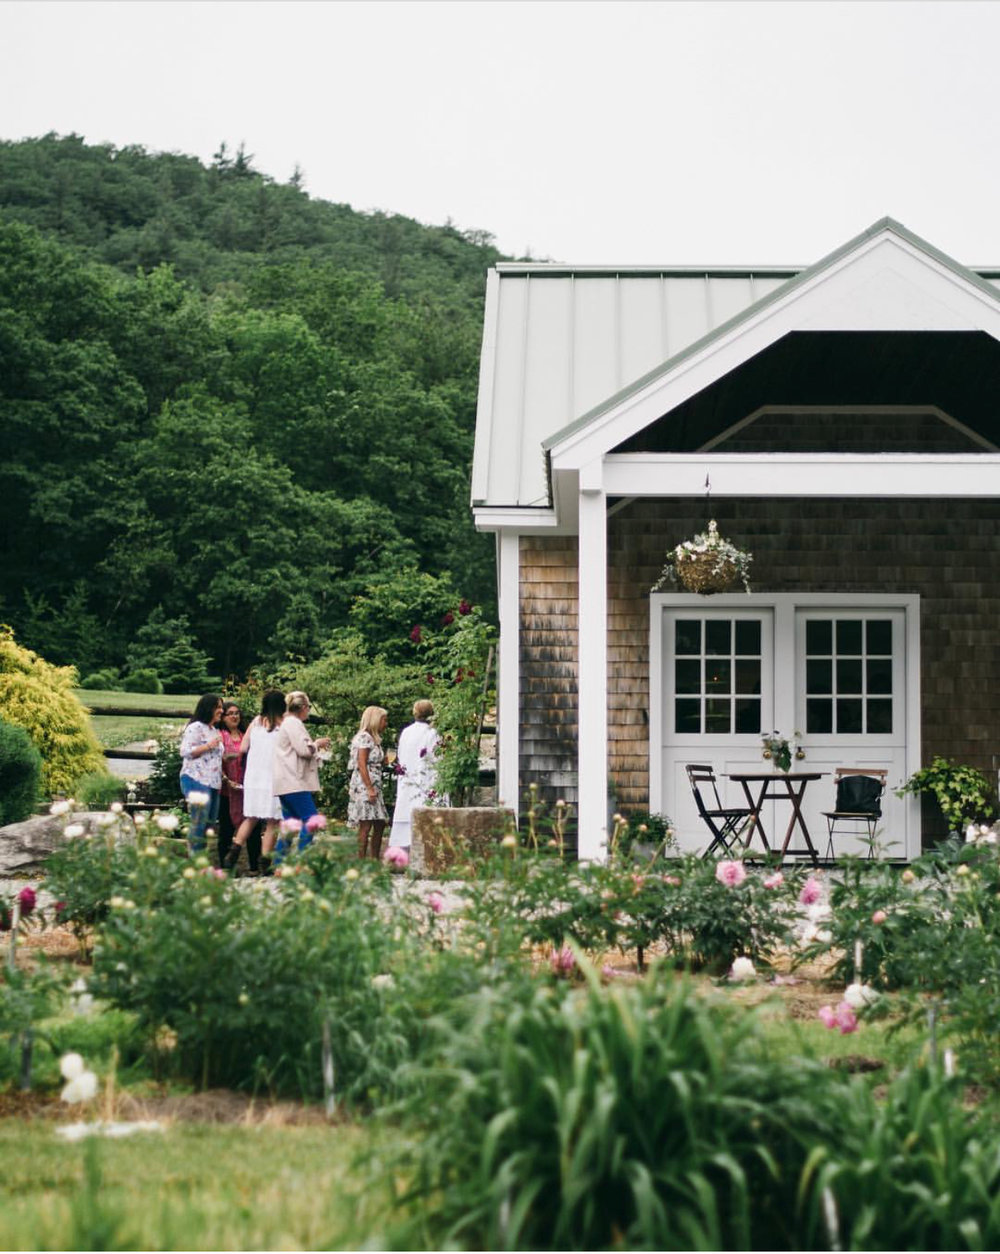 Charming country cottage for bridal showers up to 40 guests and tented weddings up to 150 guests.  20 minutes from Manchester, NH.